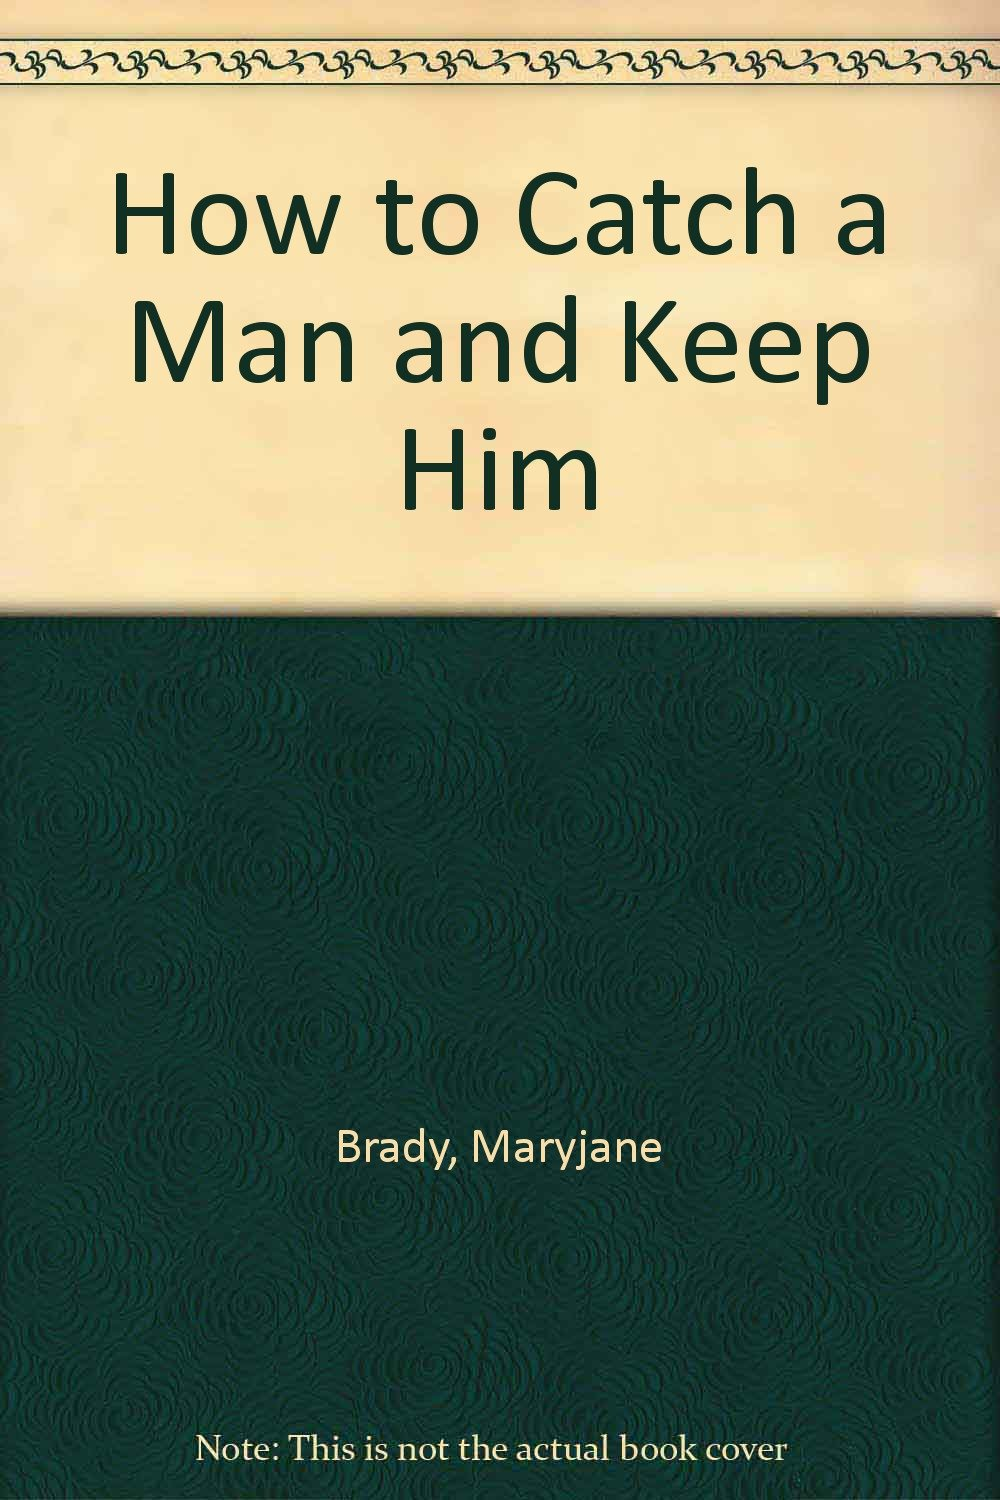 The book catch him and keep him